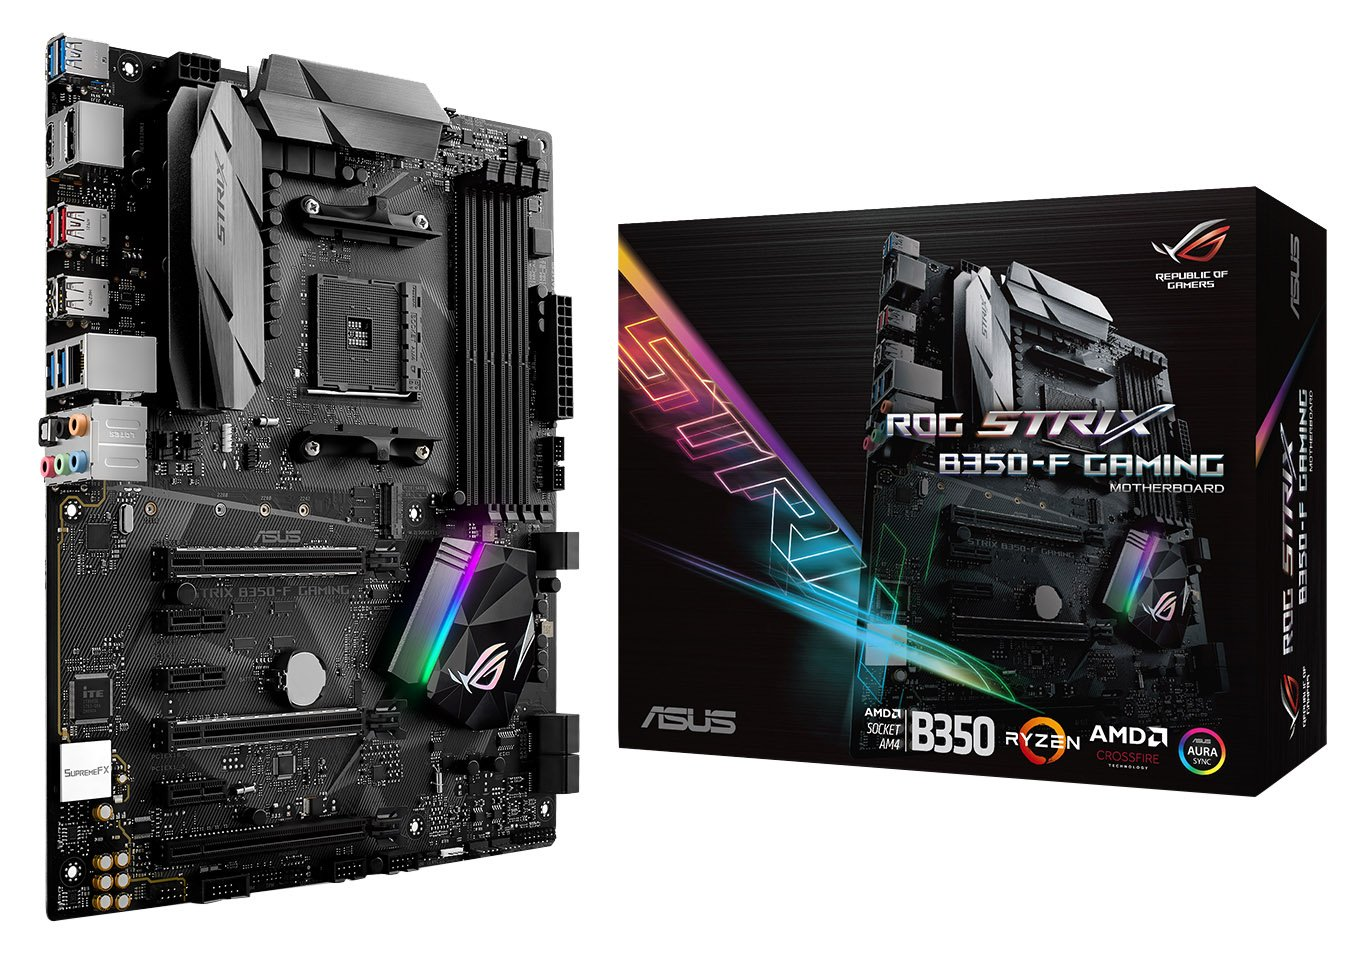 ASUS ROG STRIX B350-F GAMING AMD Ryzen AM4 DDR4 HDMI DisplayPort M.2 USB 3.1 ATX B350 Motherboard by Asus